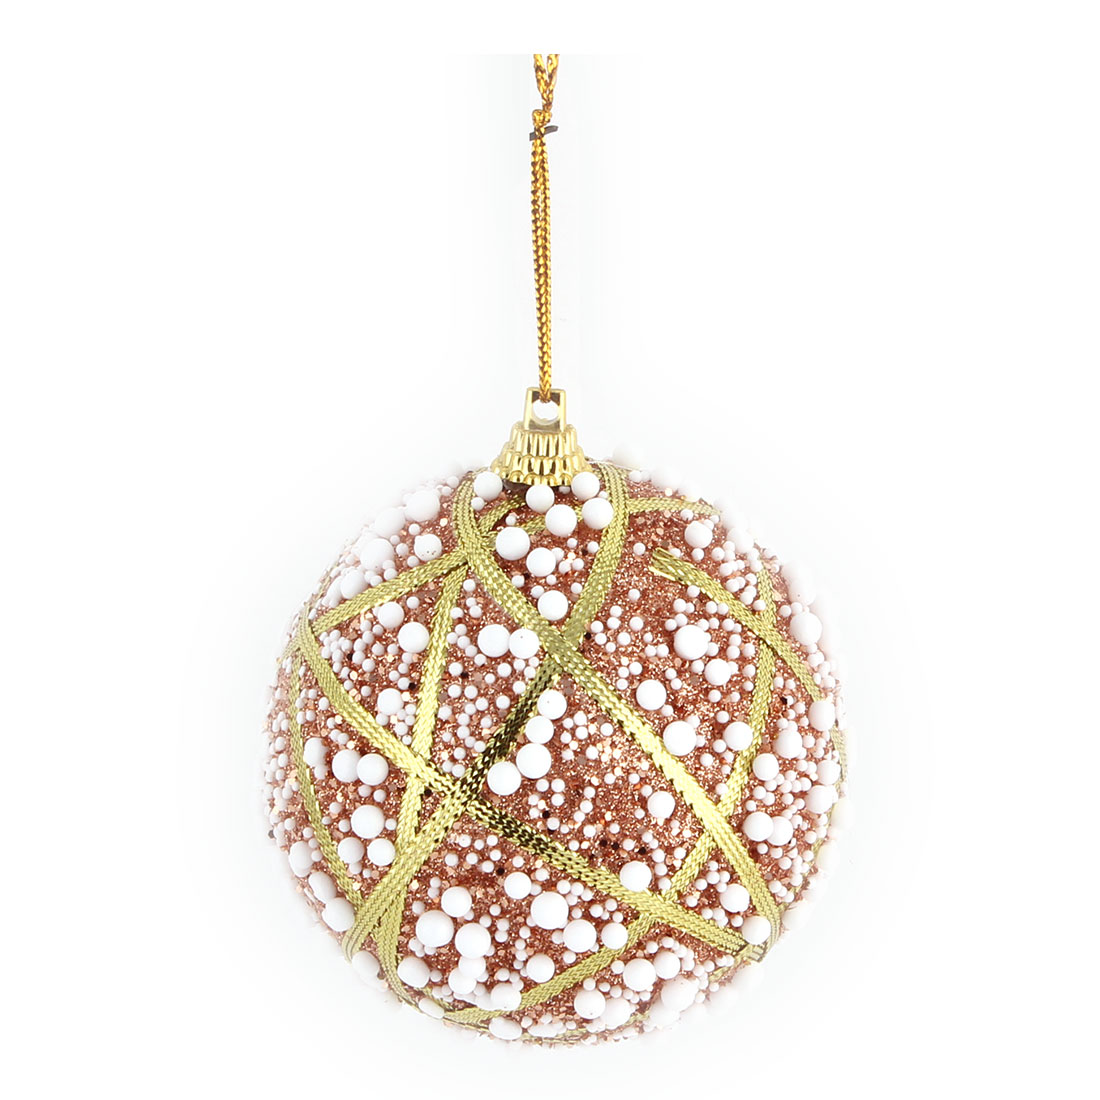 Unique Bargains Home Christmas Party Foam Snowflake Artificial Collectible Festive Hanging Ball